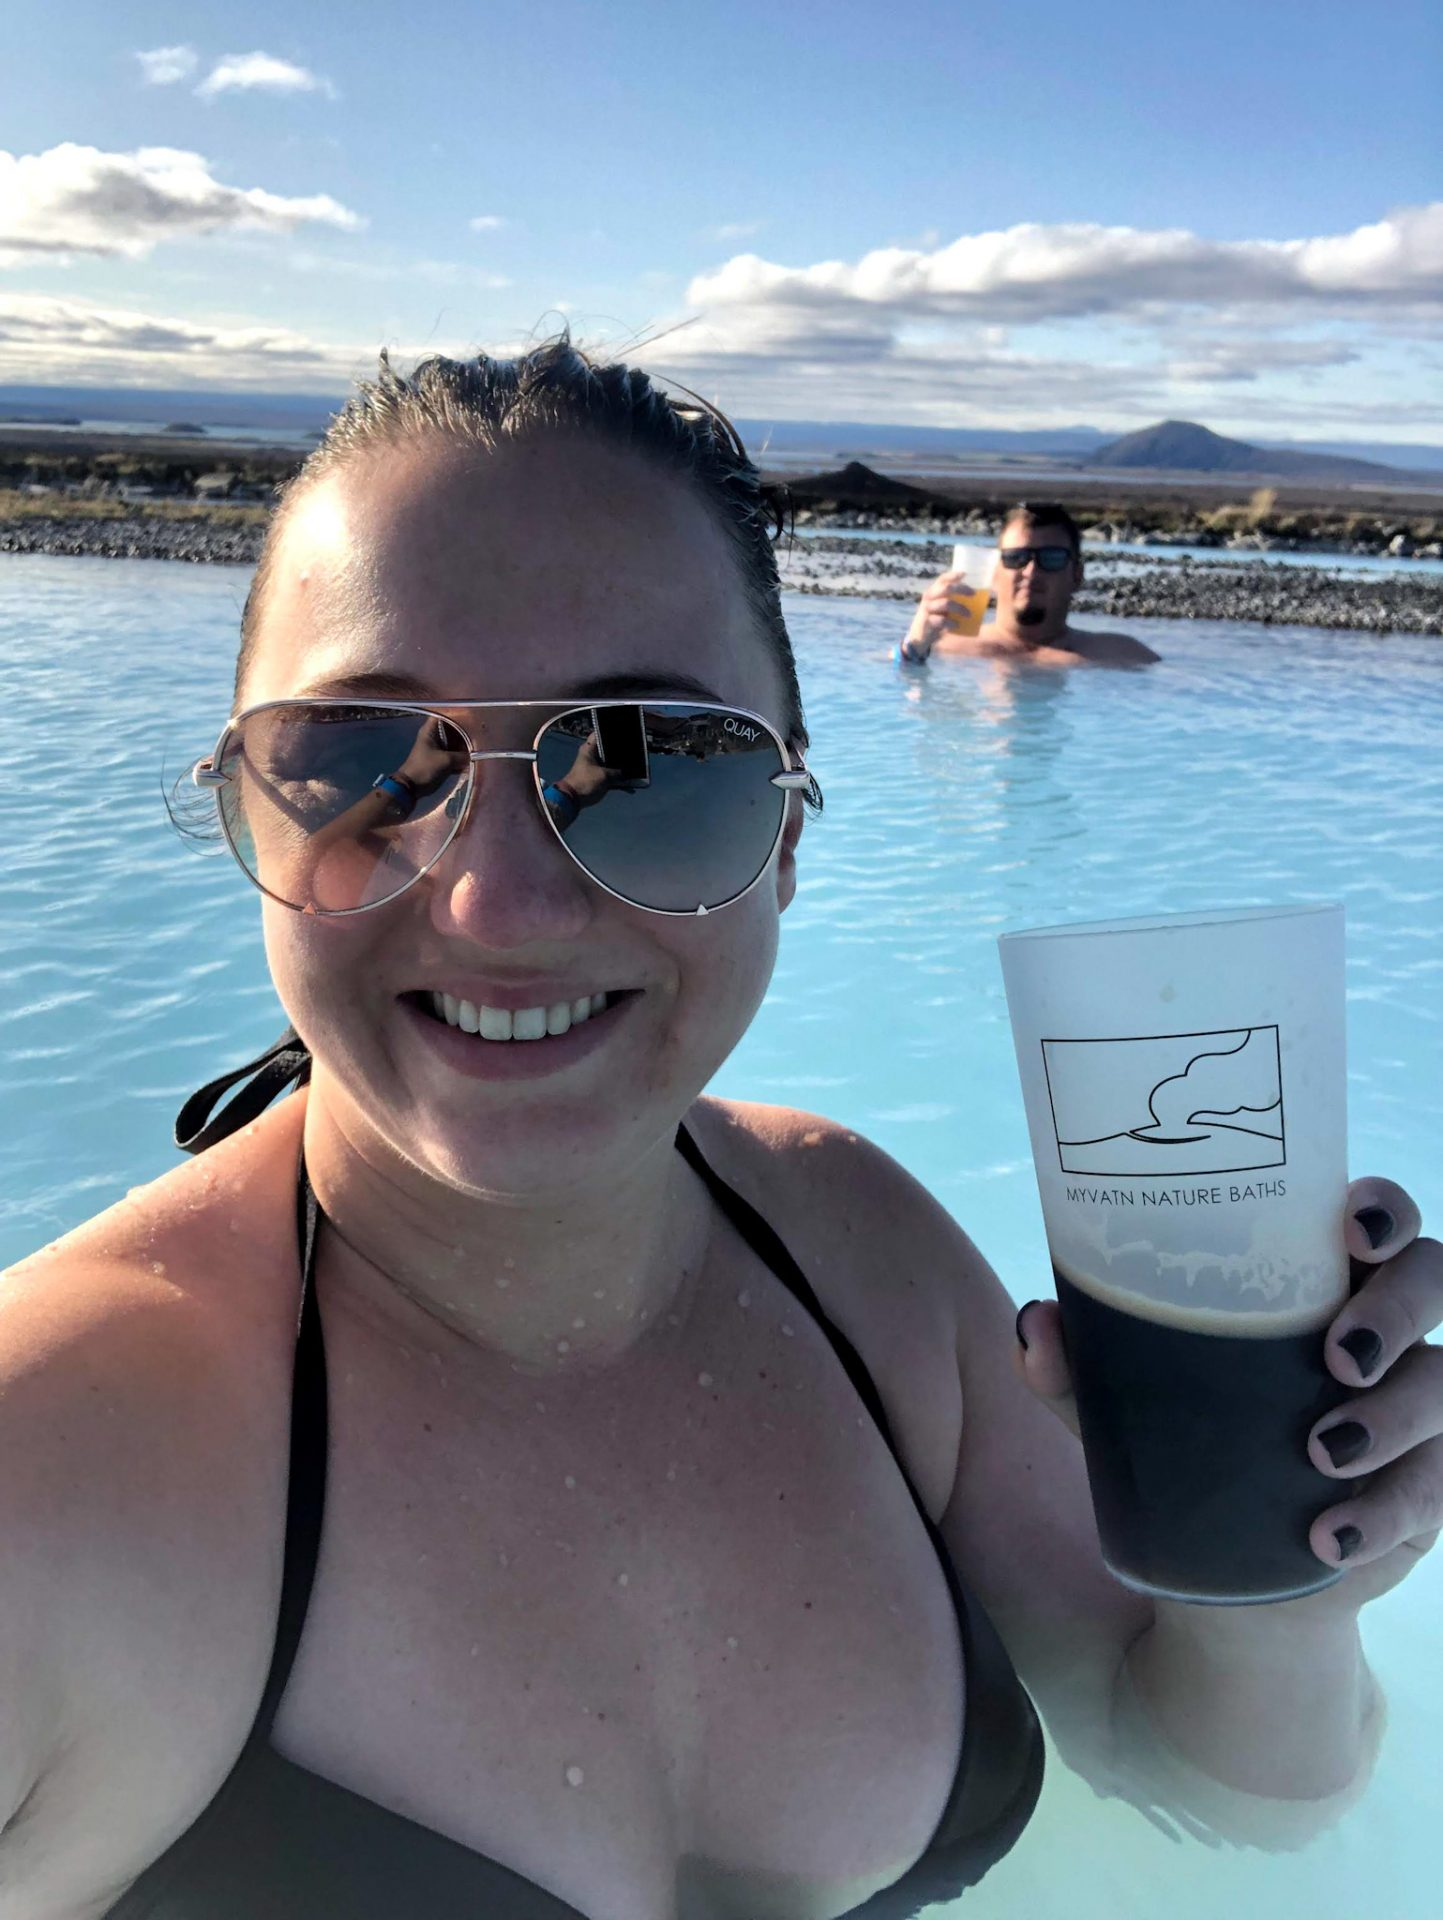 Woman in  light blue geo thermal bath experience while in Iceland. She/her wearing a black swimsuit and sunglasses holding a dark beer and smiling. In the distance her husband (he/him) wearing sunglasses and relaxing in the water with a golden beer.